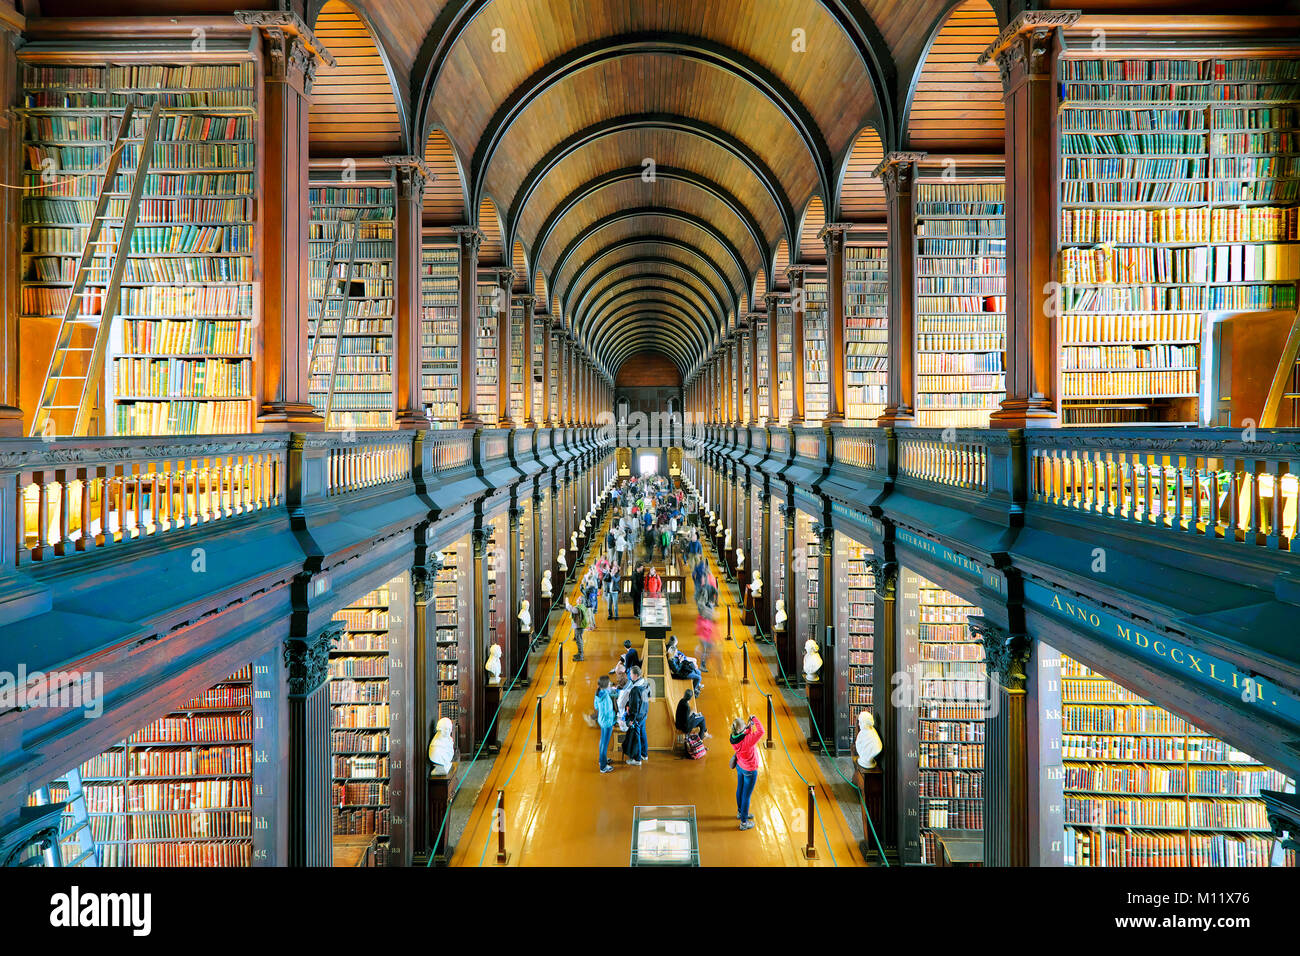 The Long Room, The Old Library, Trinity College, Dublin, Ireland - Stock Image